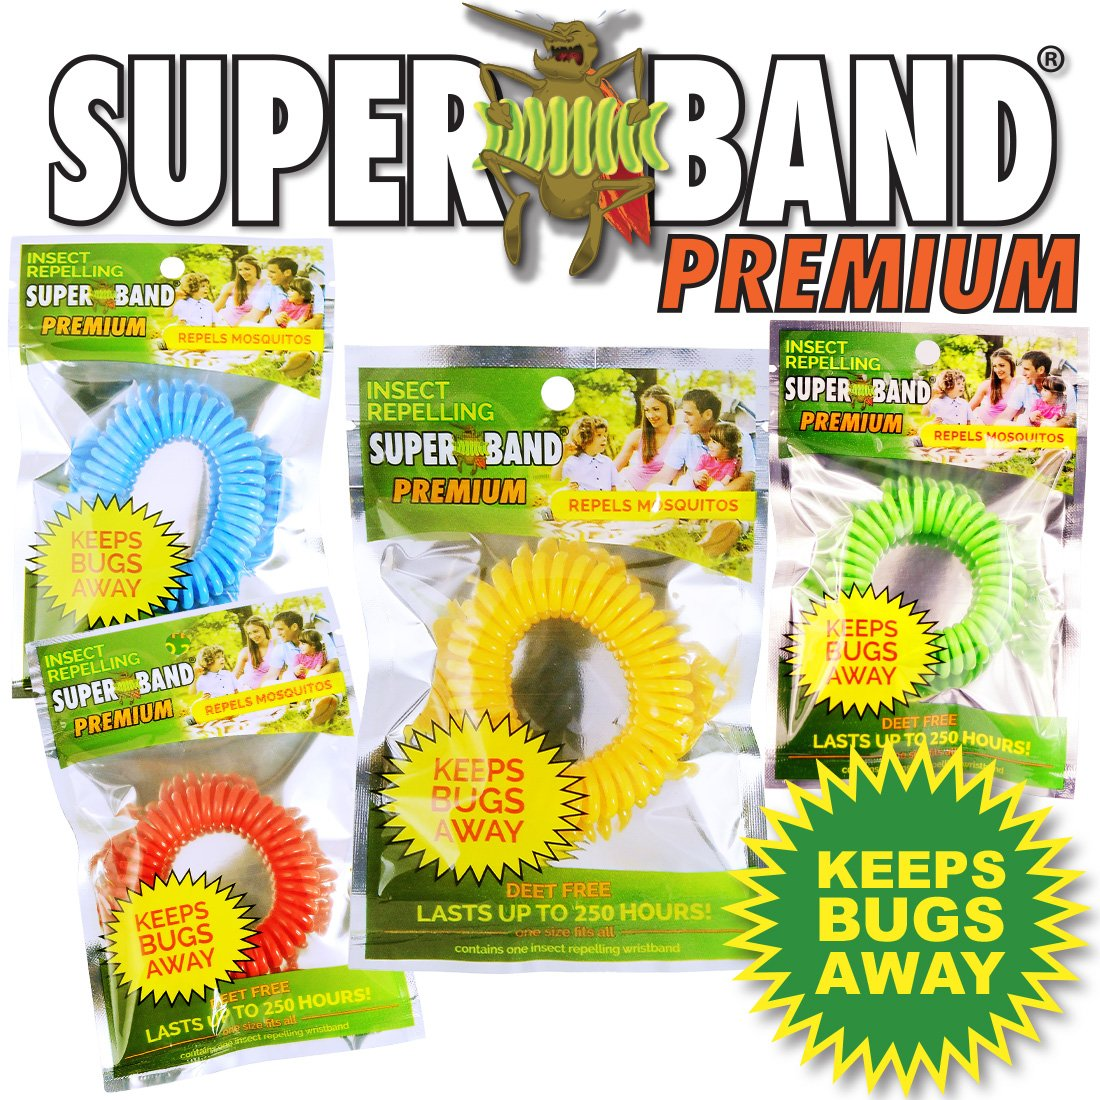 New 2016 Insect Repelling SUPERBAND PREMIUM Wristband in New Assorted Colors! Red, Blue, Green, and Yellow - New Green Packaging! (1,200)